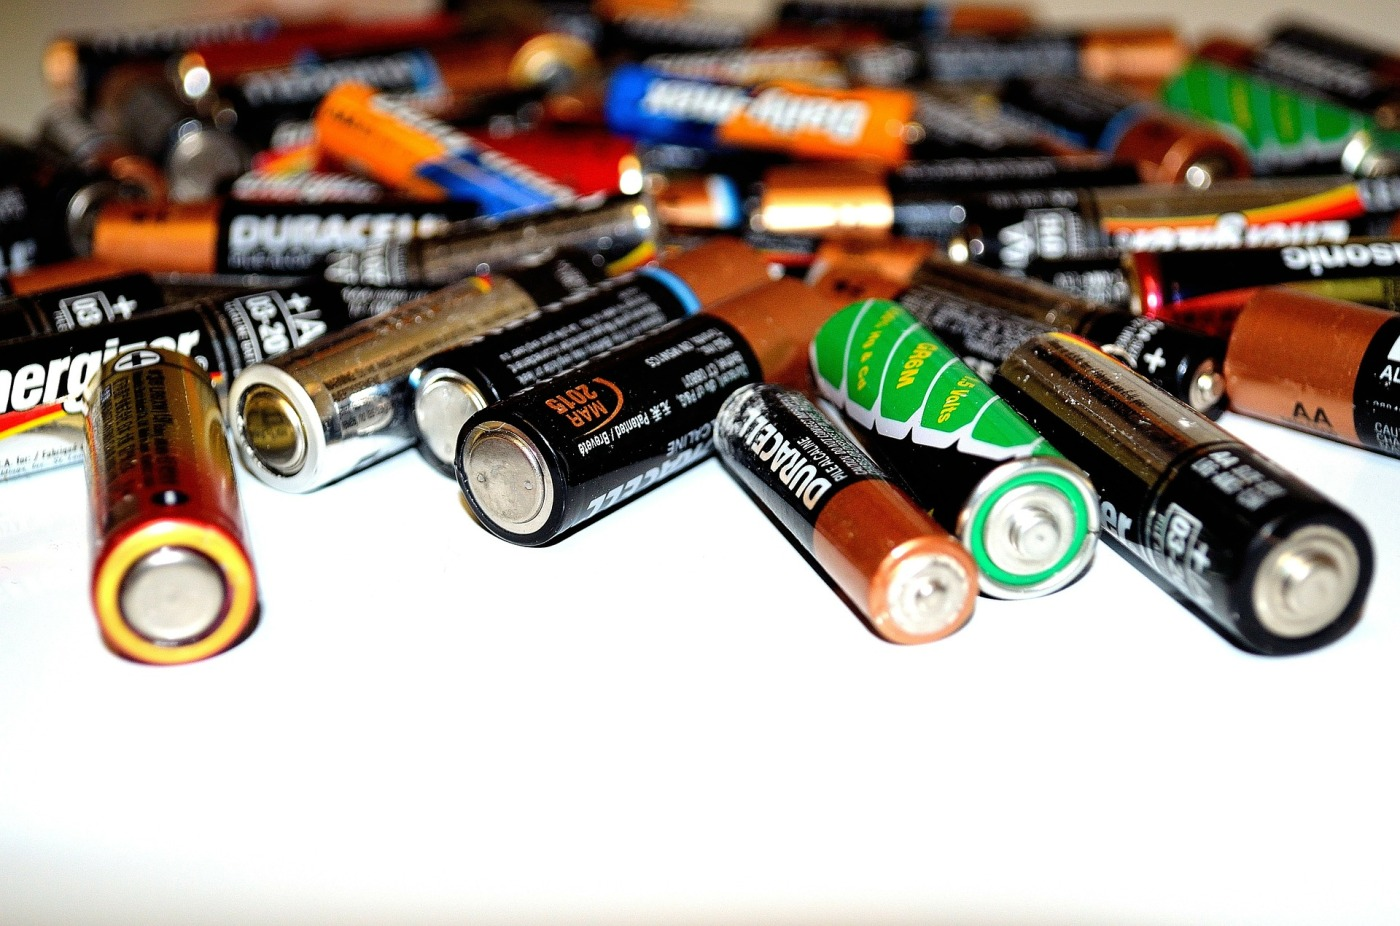 Recycling - Batteries